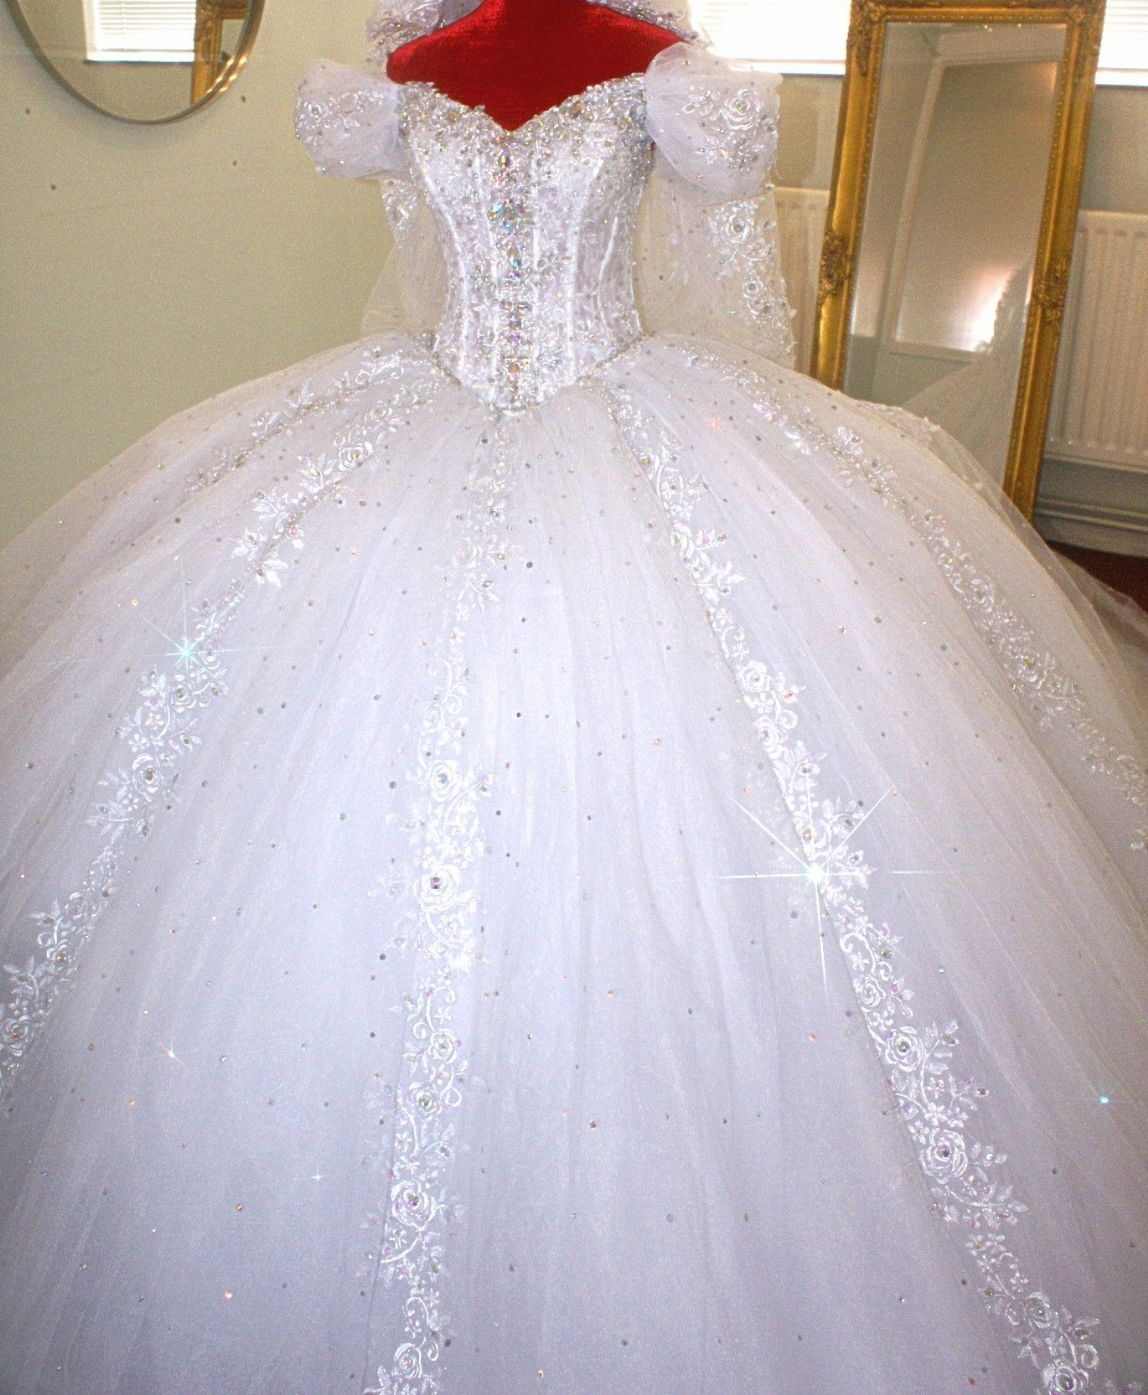 big wedding dresses with long trains photo - 1